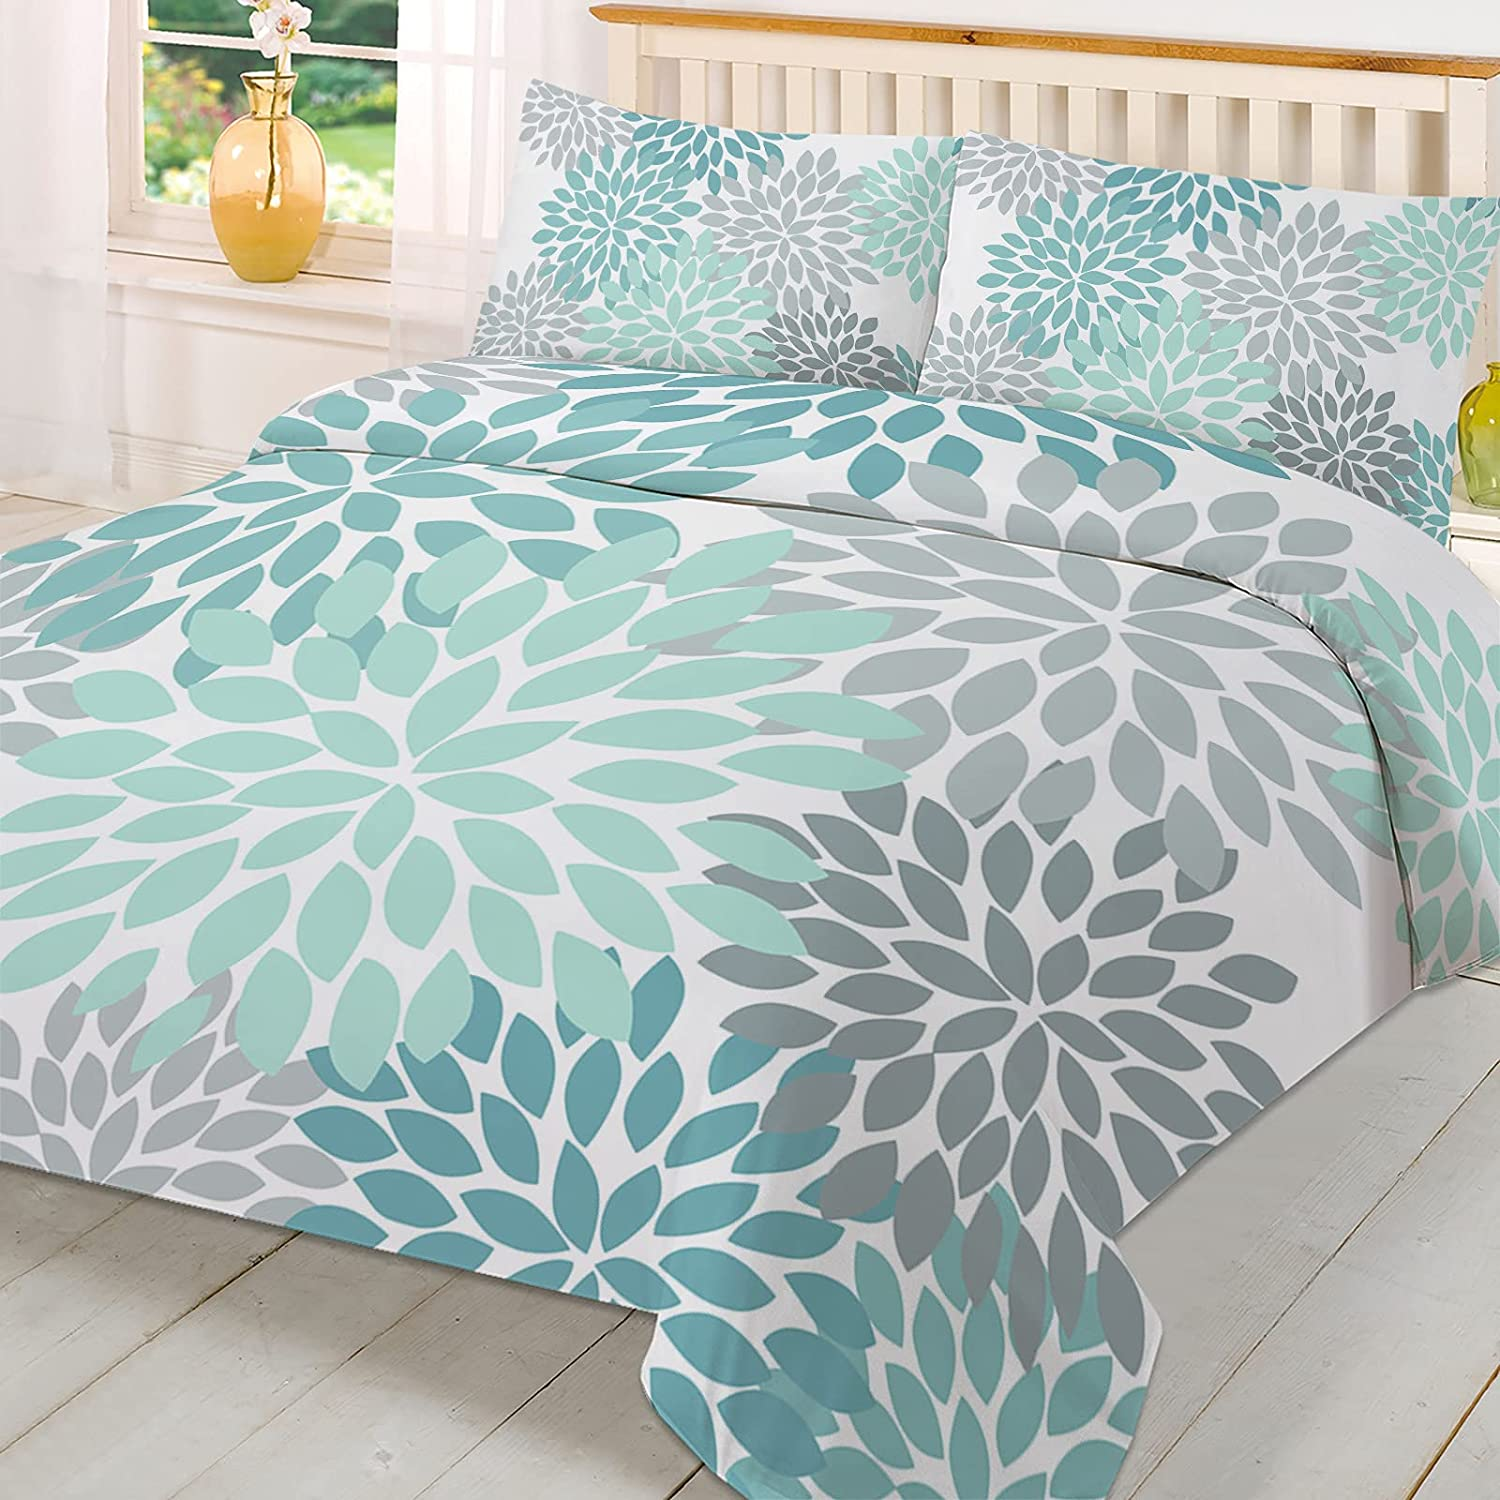 3 price Piece Bedding Set Comforter Size Thanksgiving Cover Pla Queen New product!!